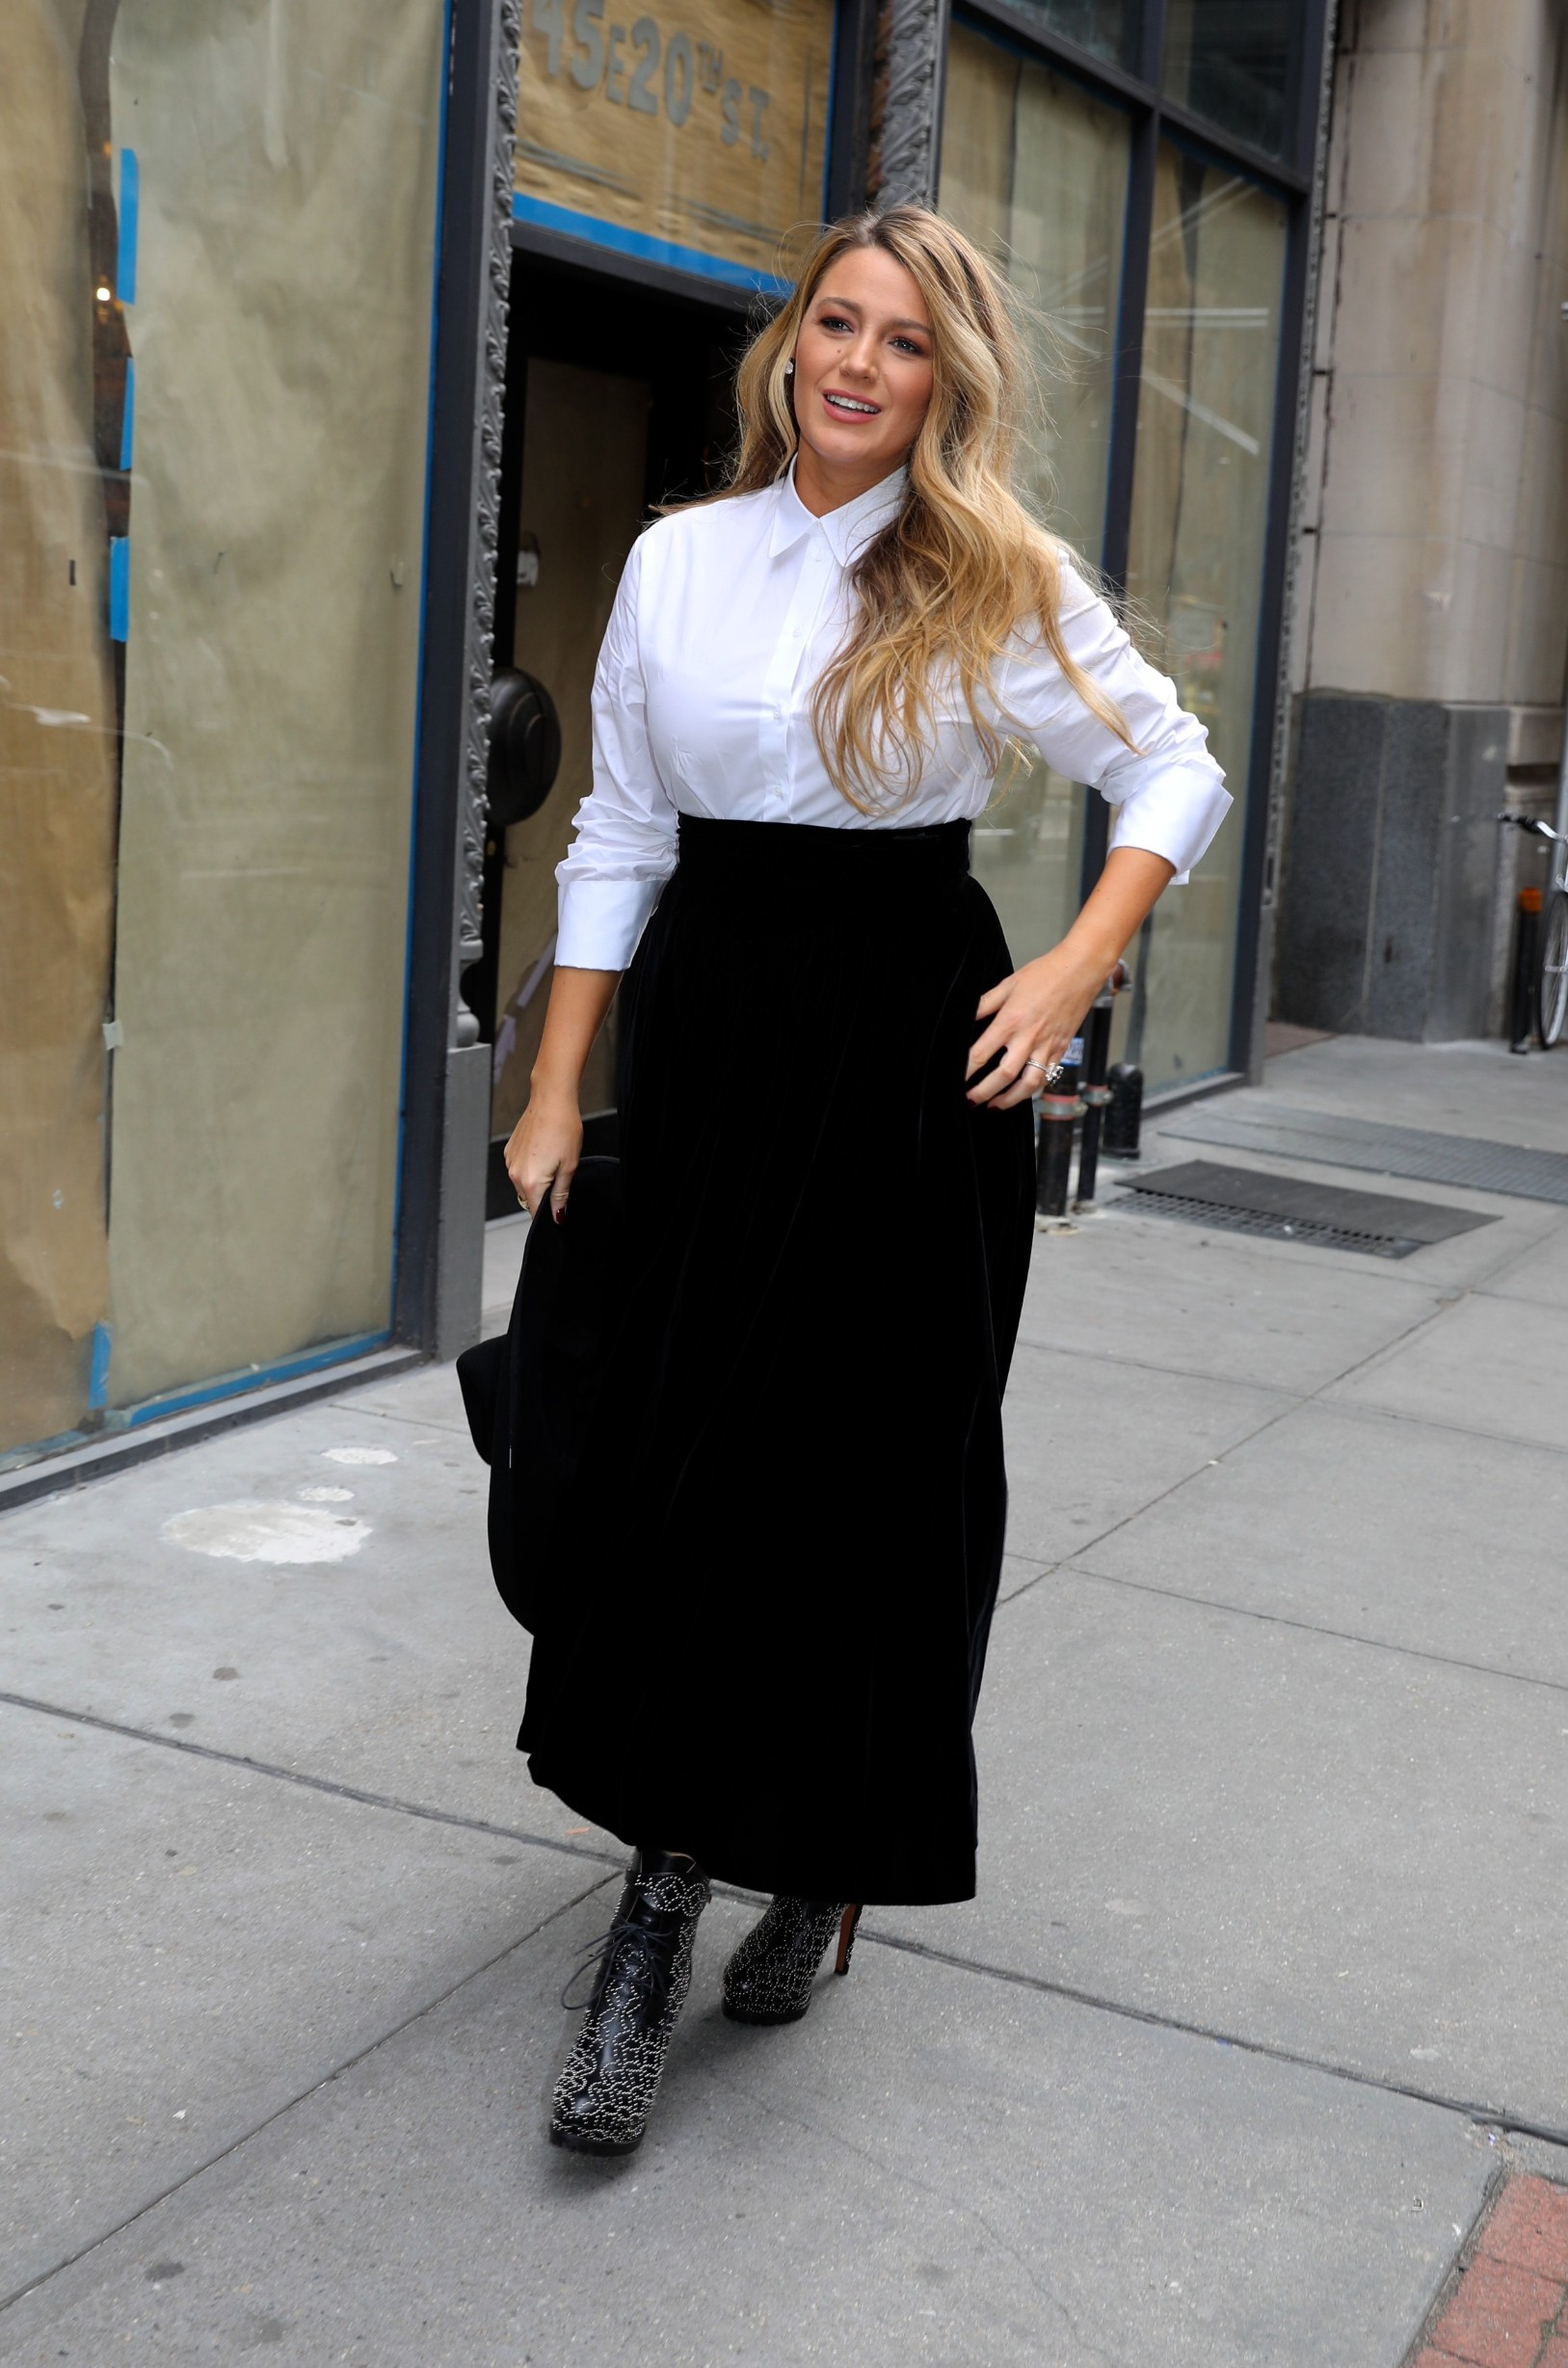 Blake Lively looks stunning in 3 different outfit changes as she promotes her new movie 'The Rhythm Section' in Uptown, Manhattan. New York City, New York - Tuesday January 28, 2020., Image: 495325018, License: Rights-managed, Restrictions: N, Model Release: no, Credit line: JP/PacificCoastNews / Pacific coast news / Profimedia